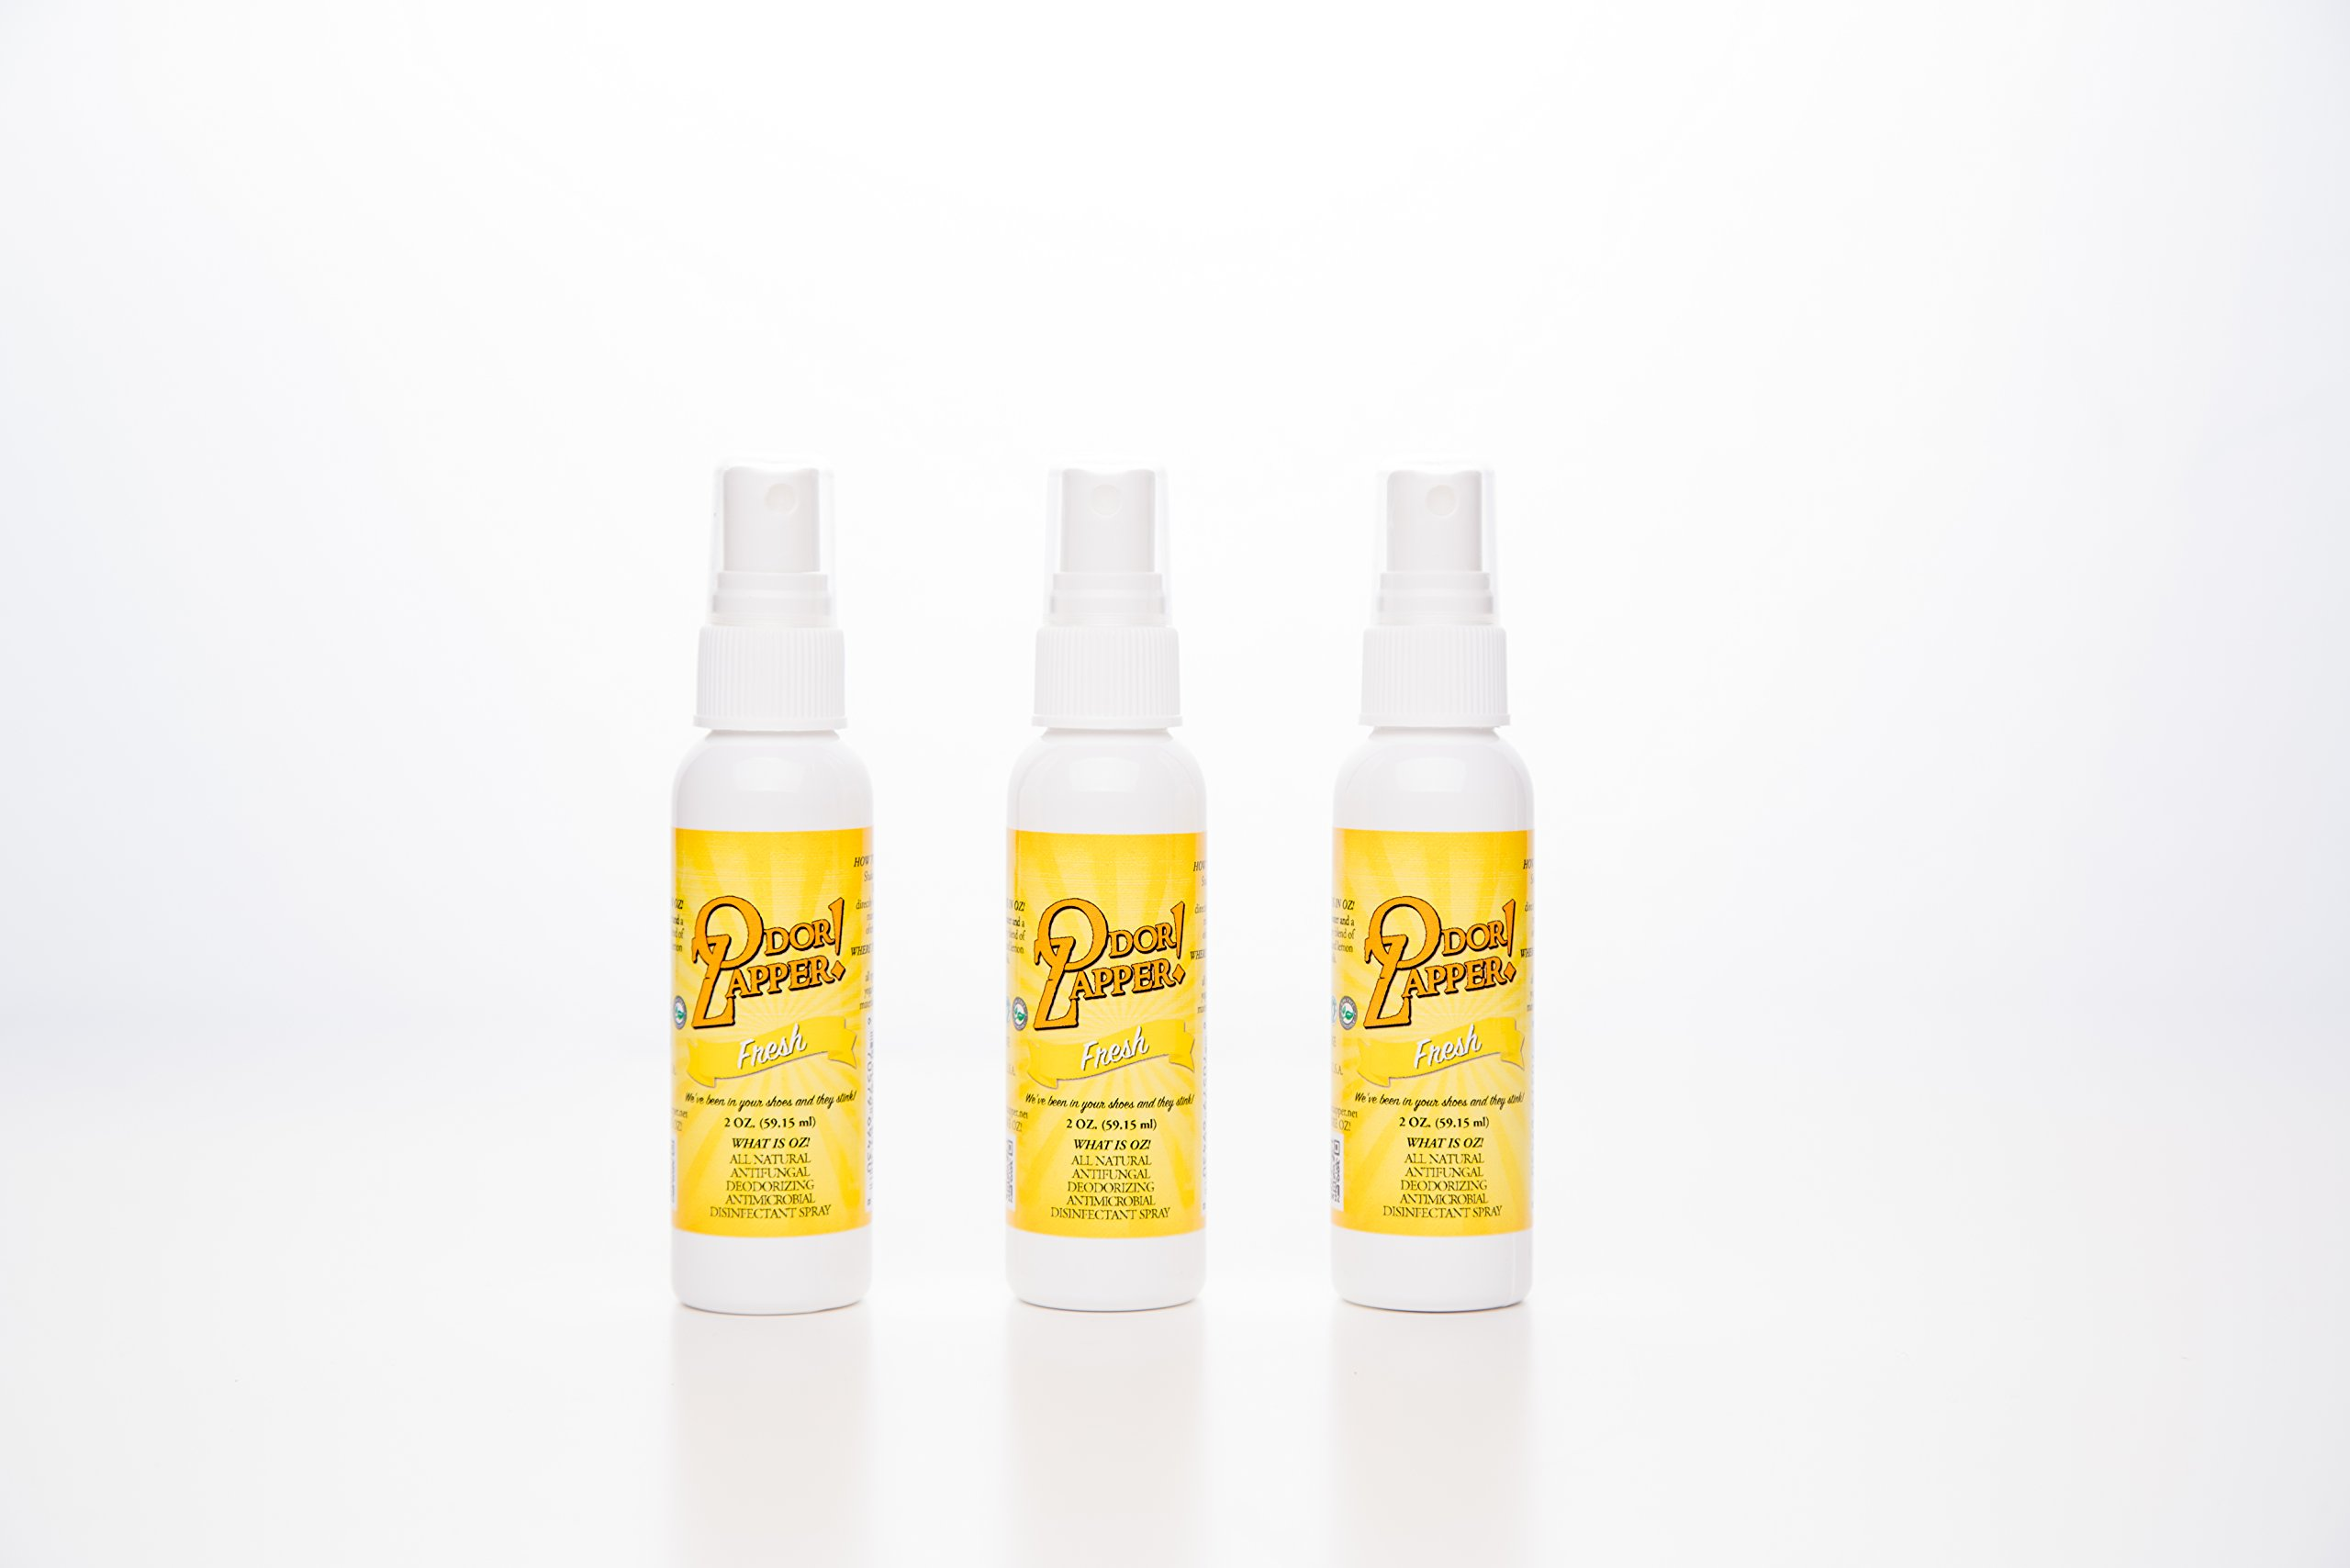 Odor Zapper Disinfectant Spray - Use in Shoes, Gym Bags, Yoga Mats, and More! - ''Fresh'' - 3 Pack - 2 Oz Bottles